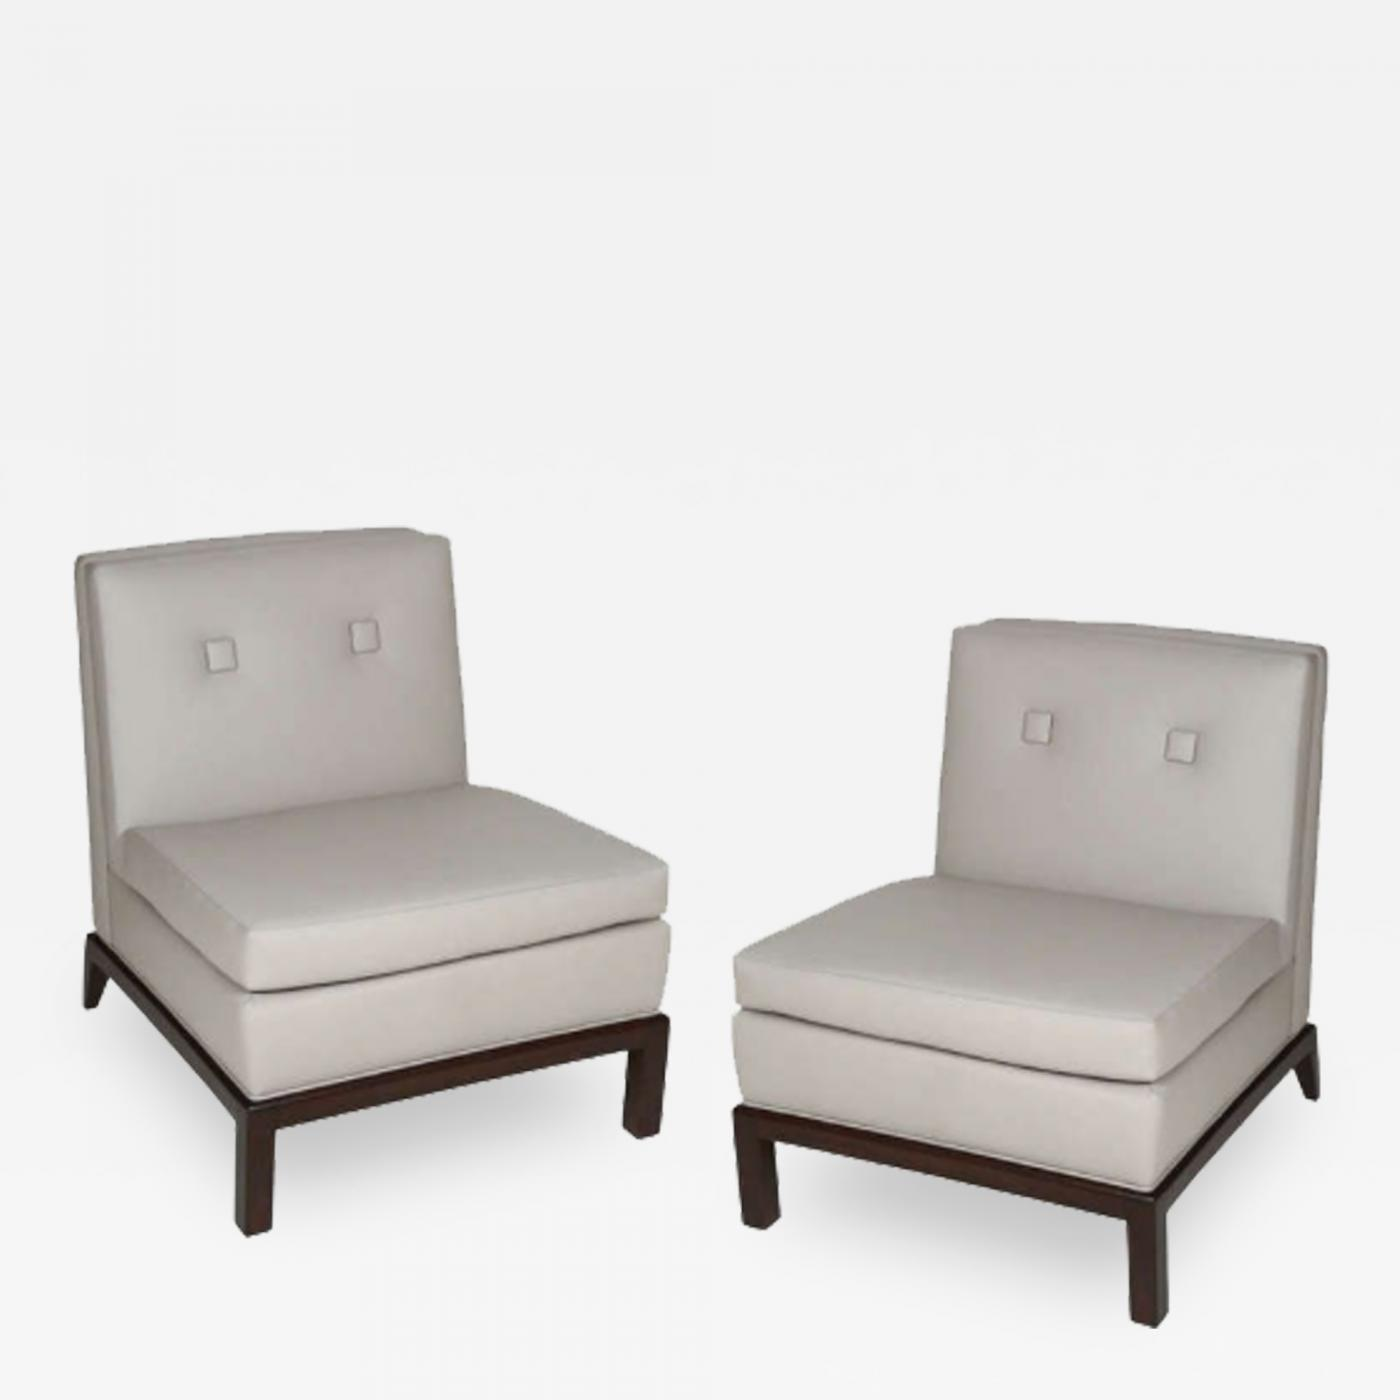 upholstered slipper chair plastic stool malaysia pair of custom leather chairs by everett sebring